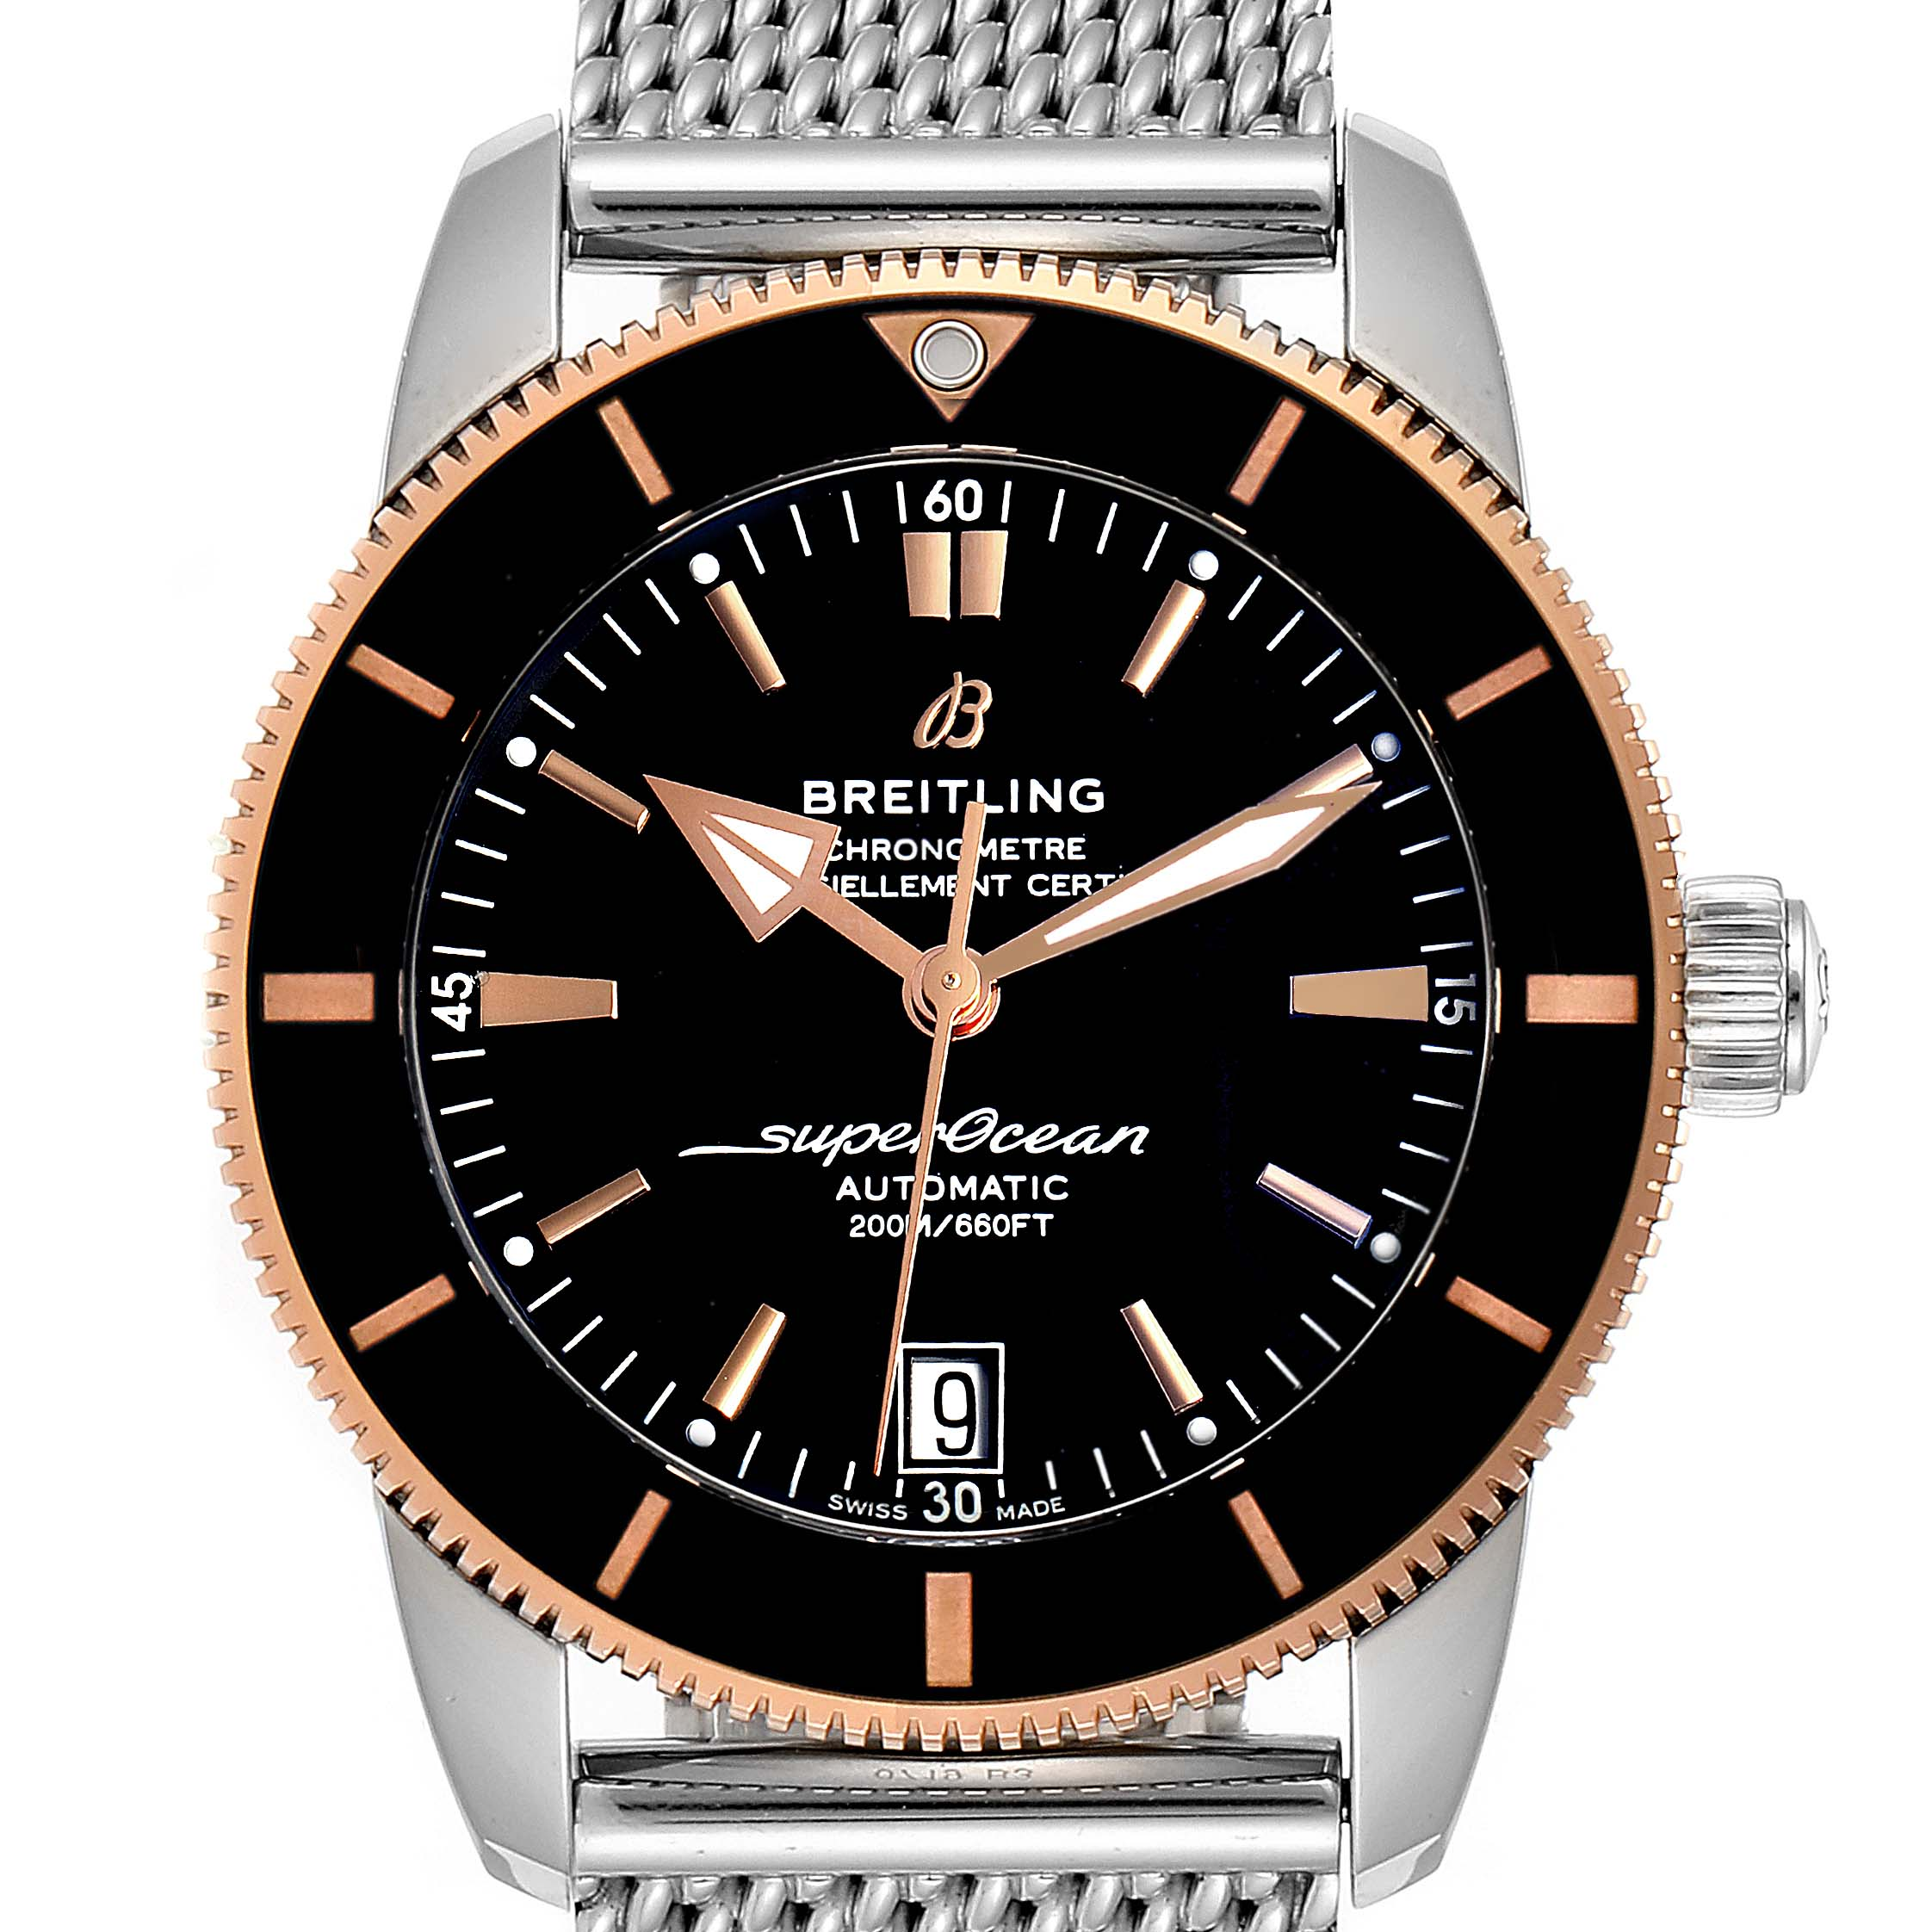 Breitling Superocean Heritage II 42 Steel Rose Gold Watch UB2010 Box Papers